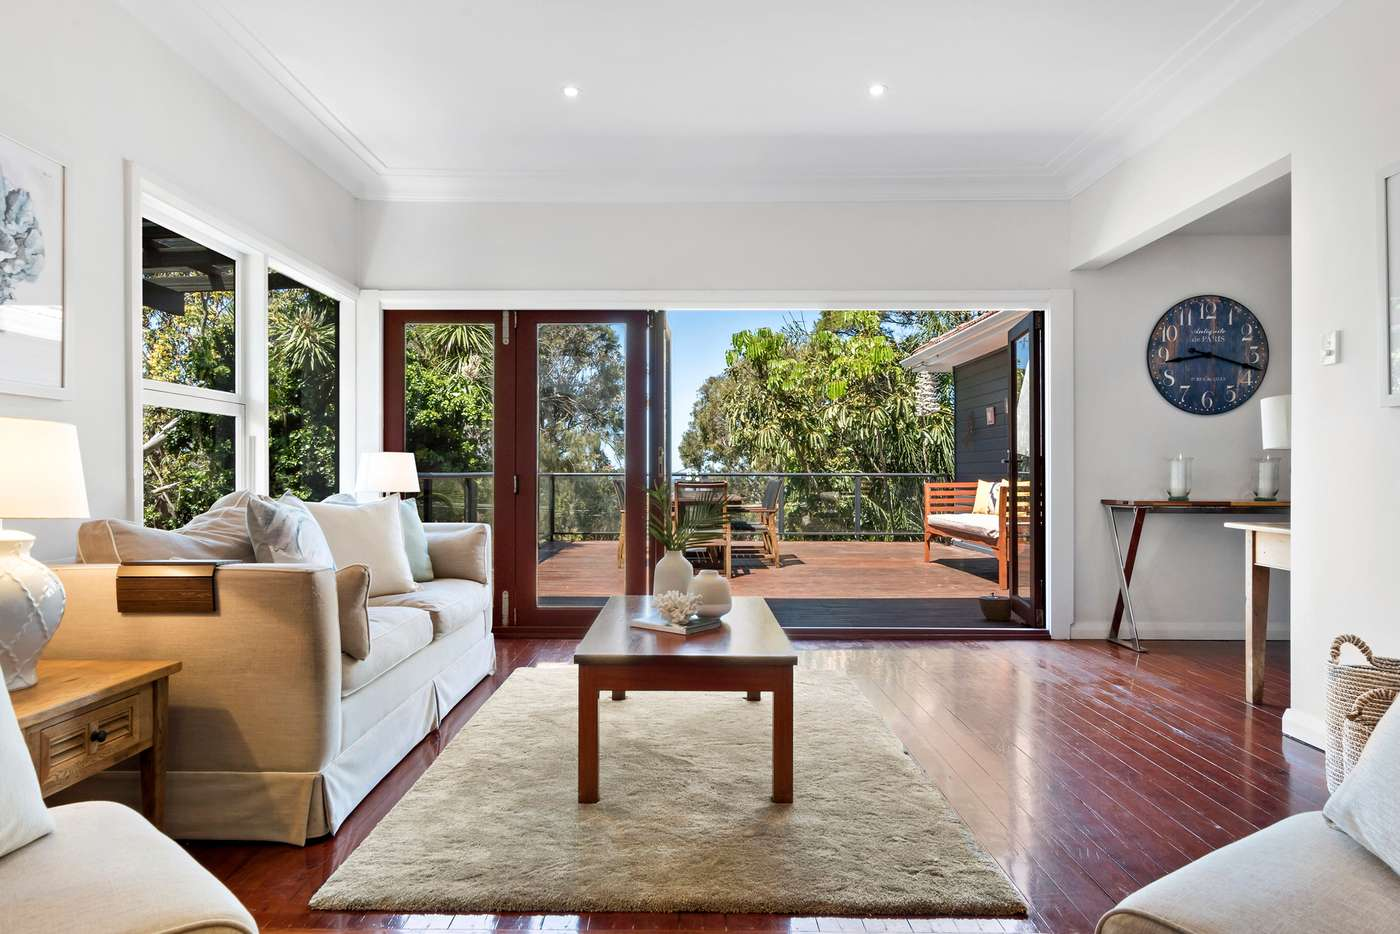 Sixth view of Homely house listing, 26 Kimo Street, North Balgowlah NSW 2093